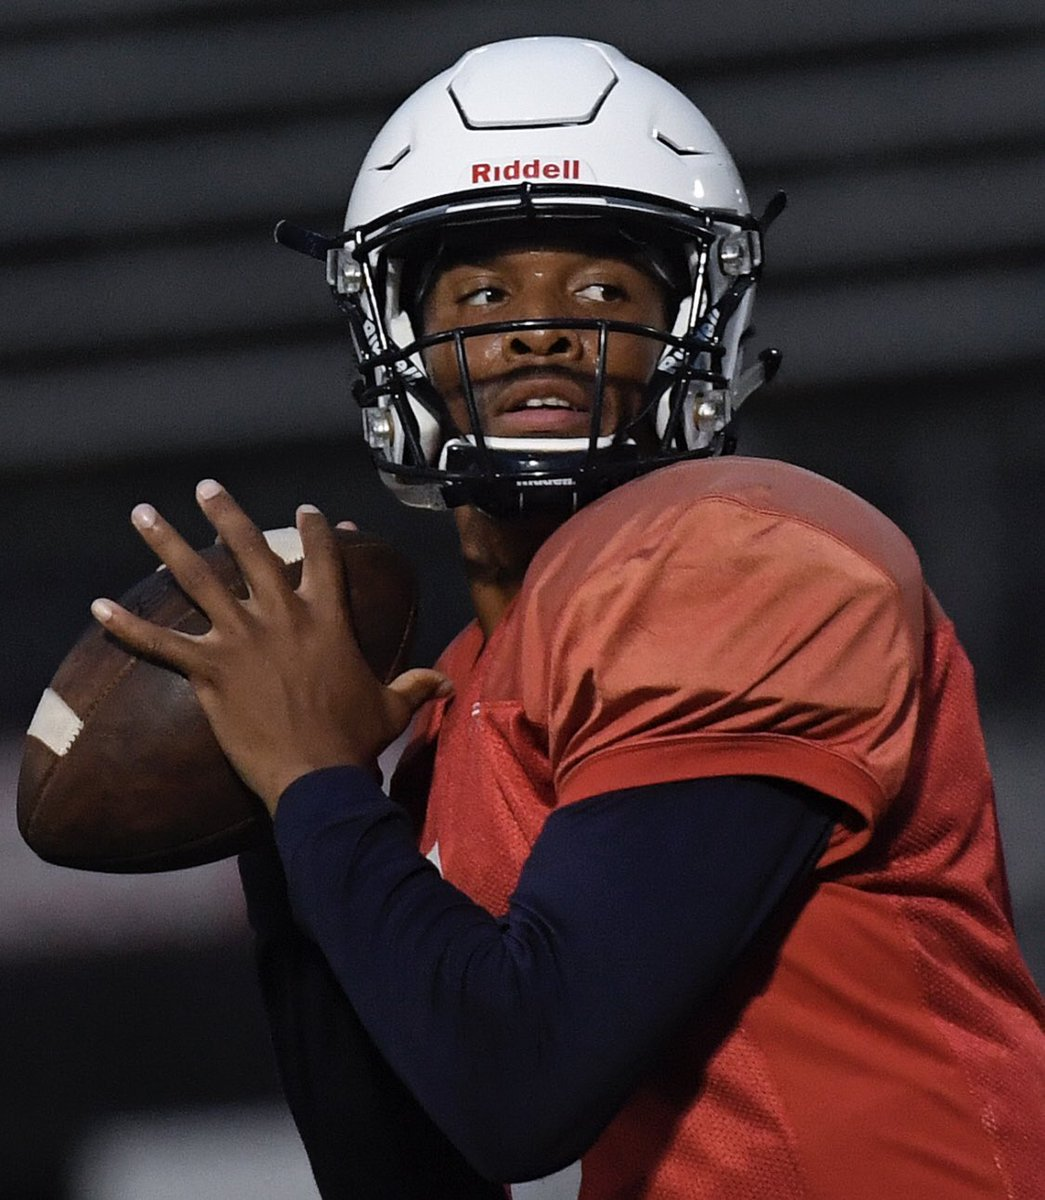 Well here's some interesting news.. Caylin Newton (Cam Newton's brother) announced he's transferring to #Auburn.  You may remember Caylin Newton from when he led Howard to one of the biggest upset wins in modern CFB history over UNLV. Howard entered the game as 45 point underdogs <br>http://pic.twitter.com/QDfpkKQs5f